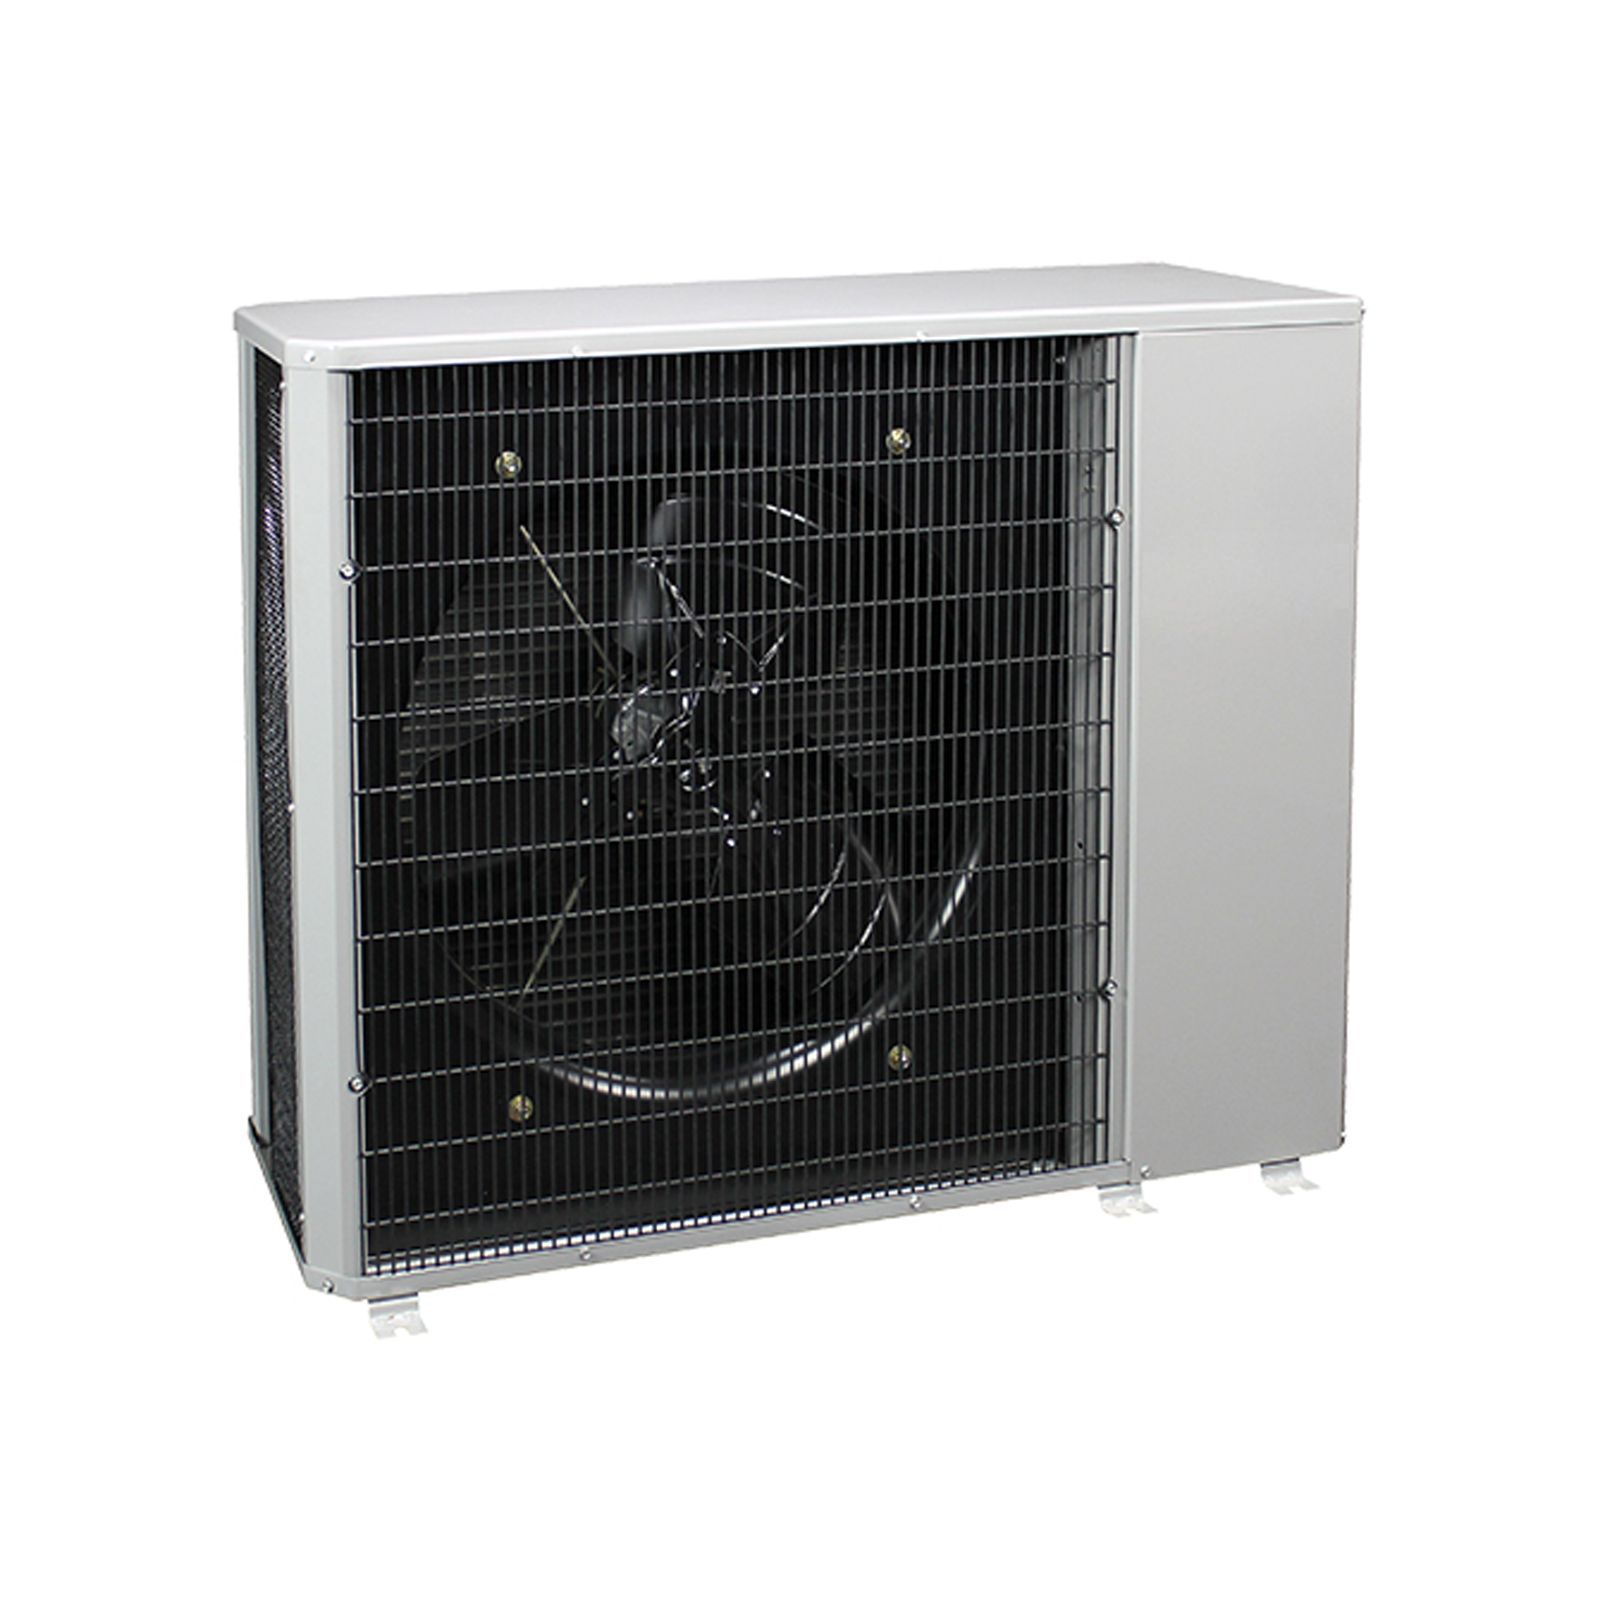 Tempstar NH4A460AKA - 5 Ton, 14 SEER Performance 14 Air Conditioner